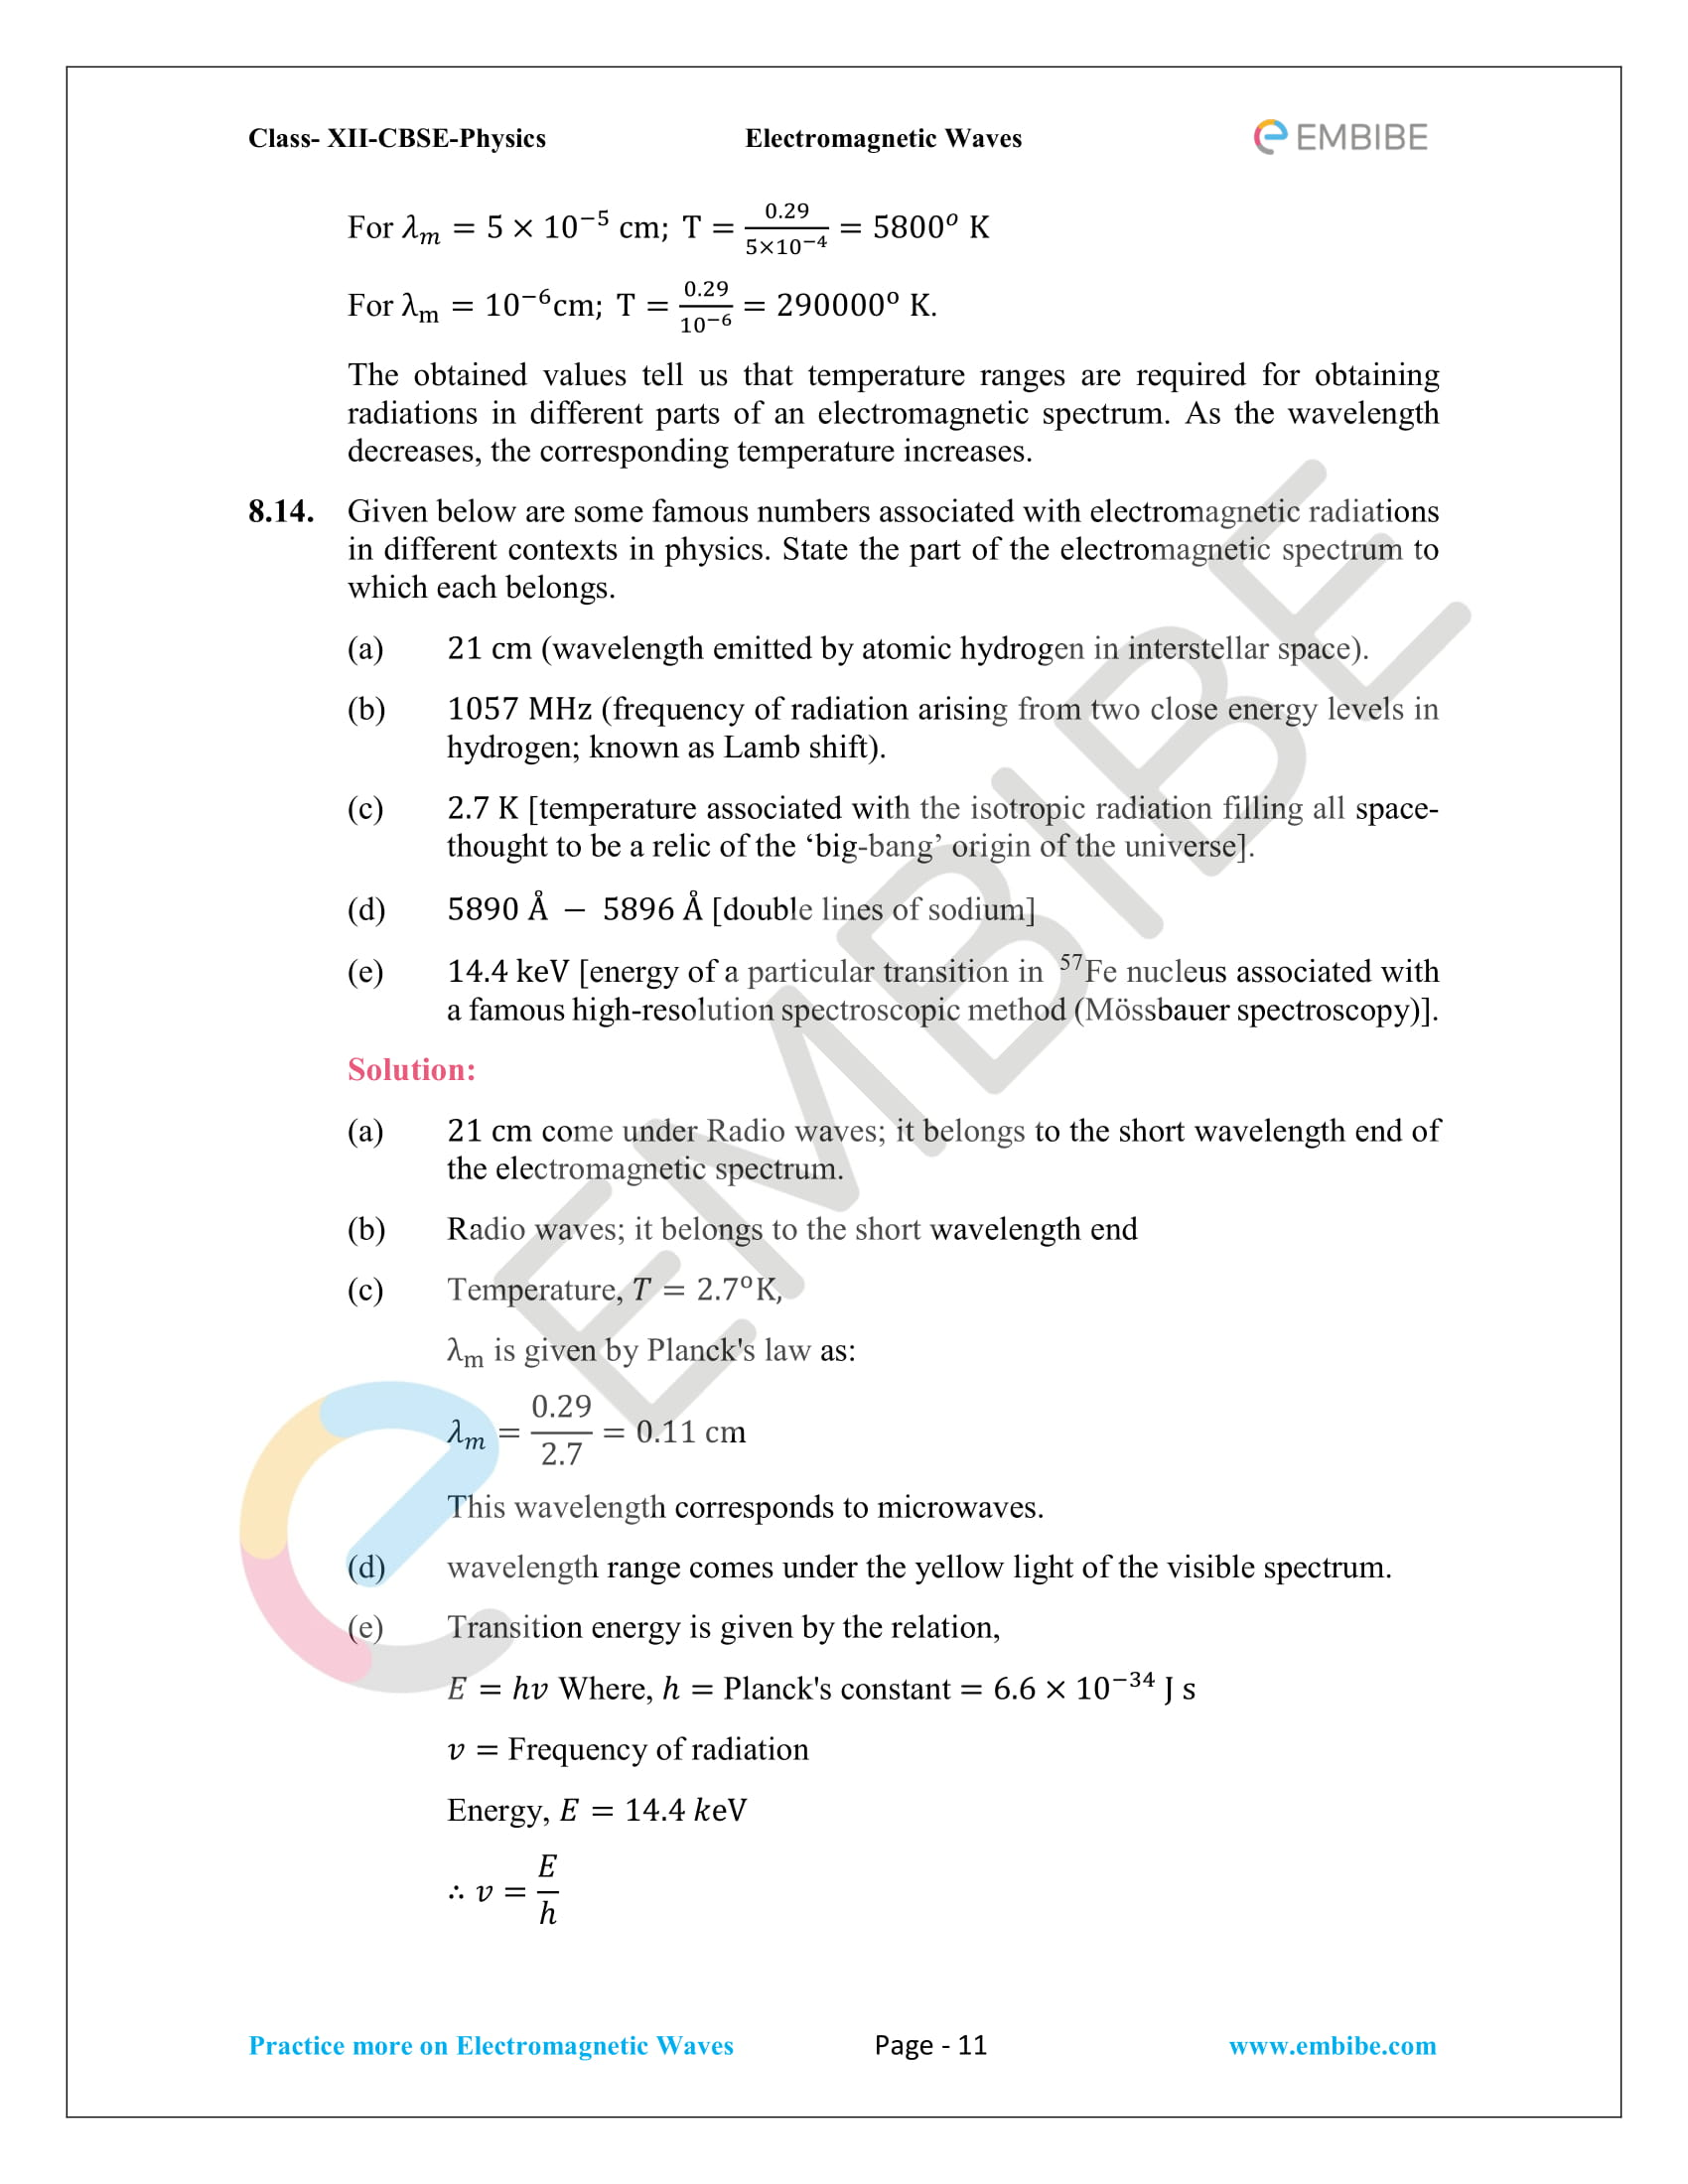 NCERT Solutions for Class 12 Physics Chapter 8 Electromagnetic Waves-11